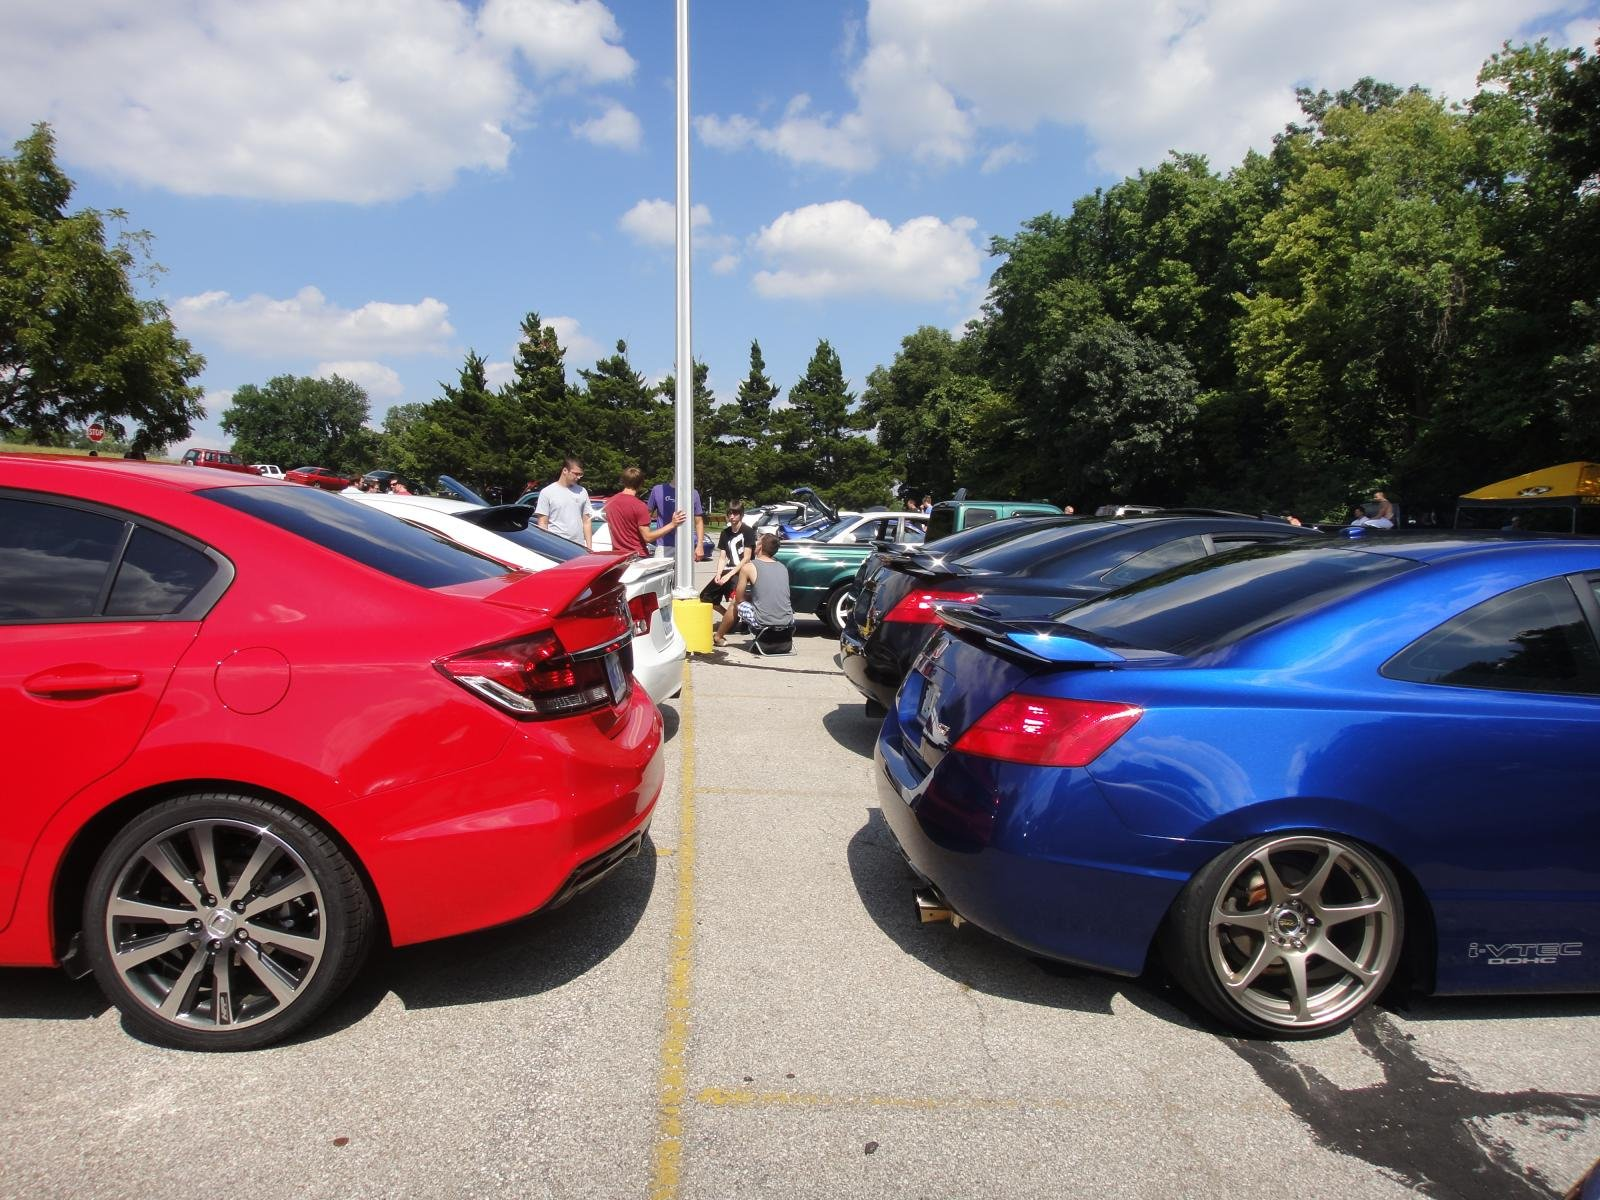 http://www.9thgencivic.com/forum/attachments/new-member-introductions/78570d1377273601-new-member-kansas-city-2013-civic-si-rallye-red-4-door-dsc04659.jpg